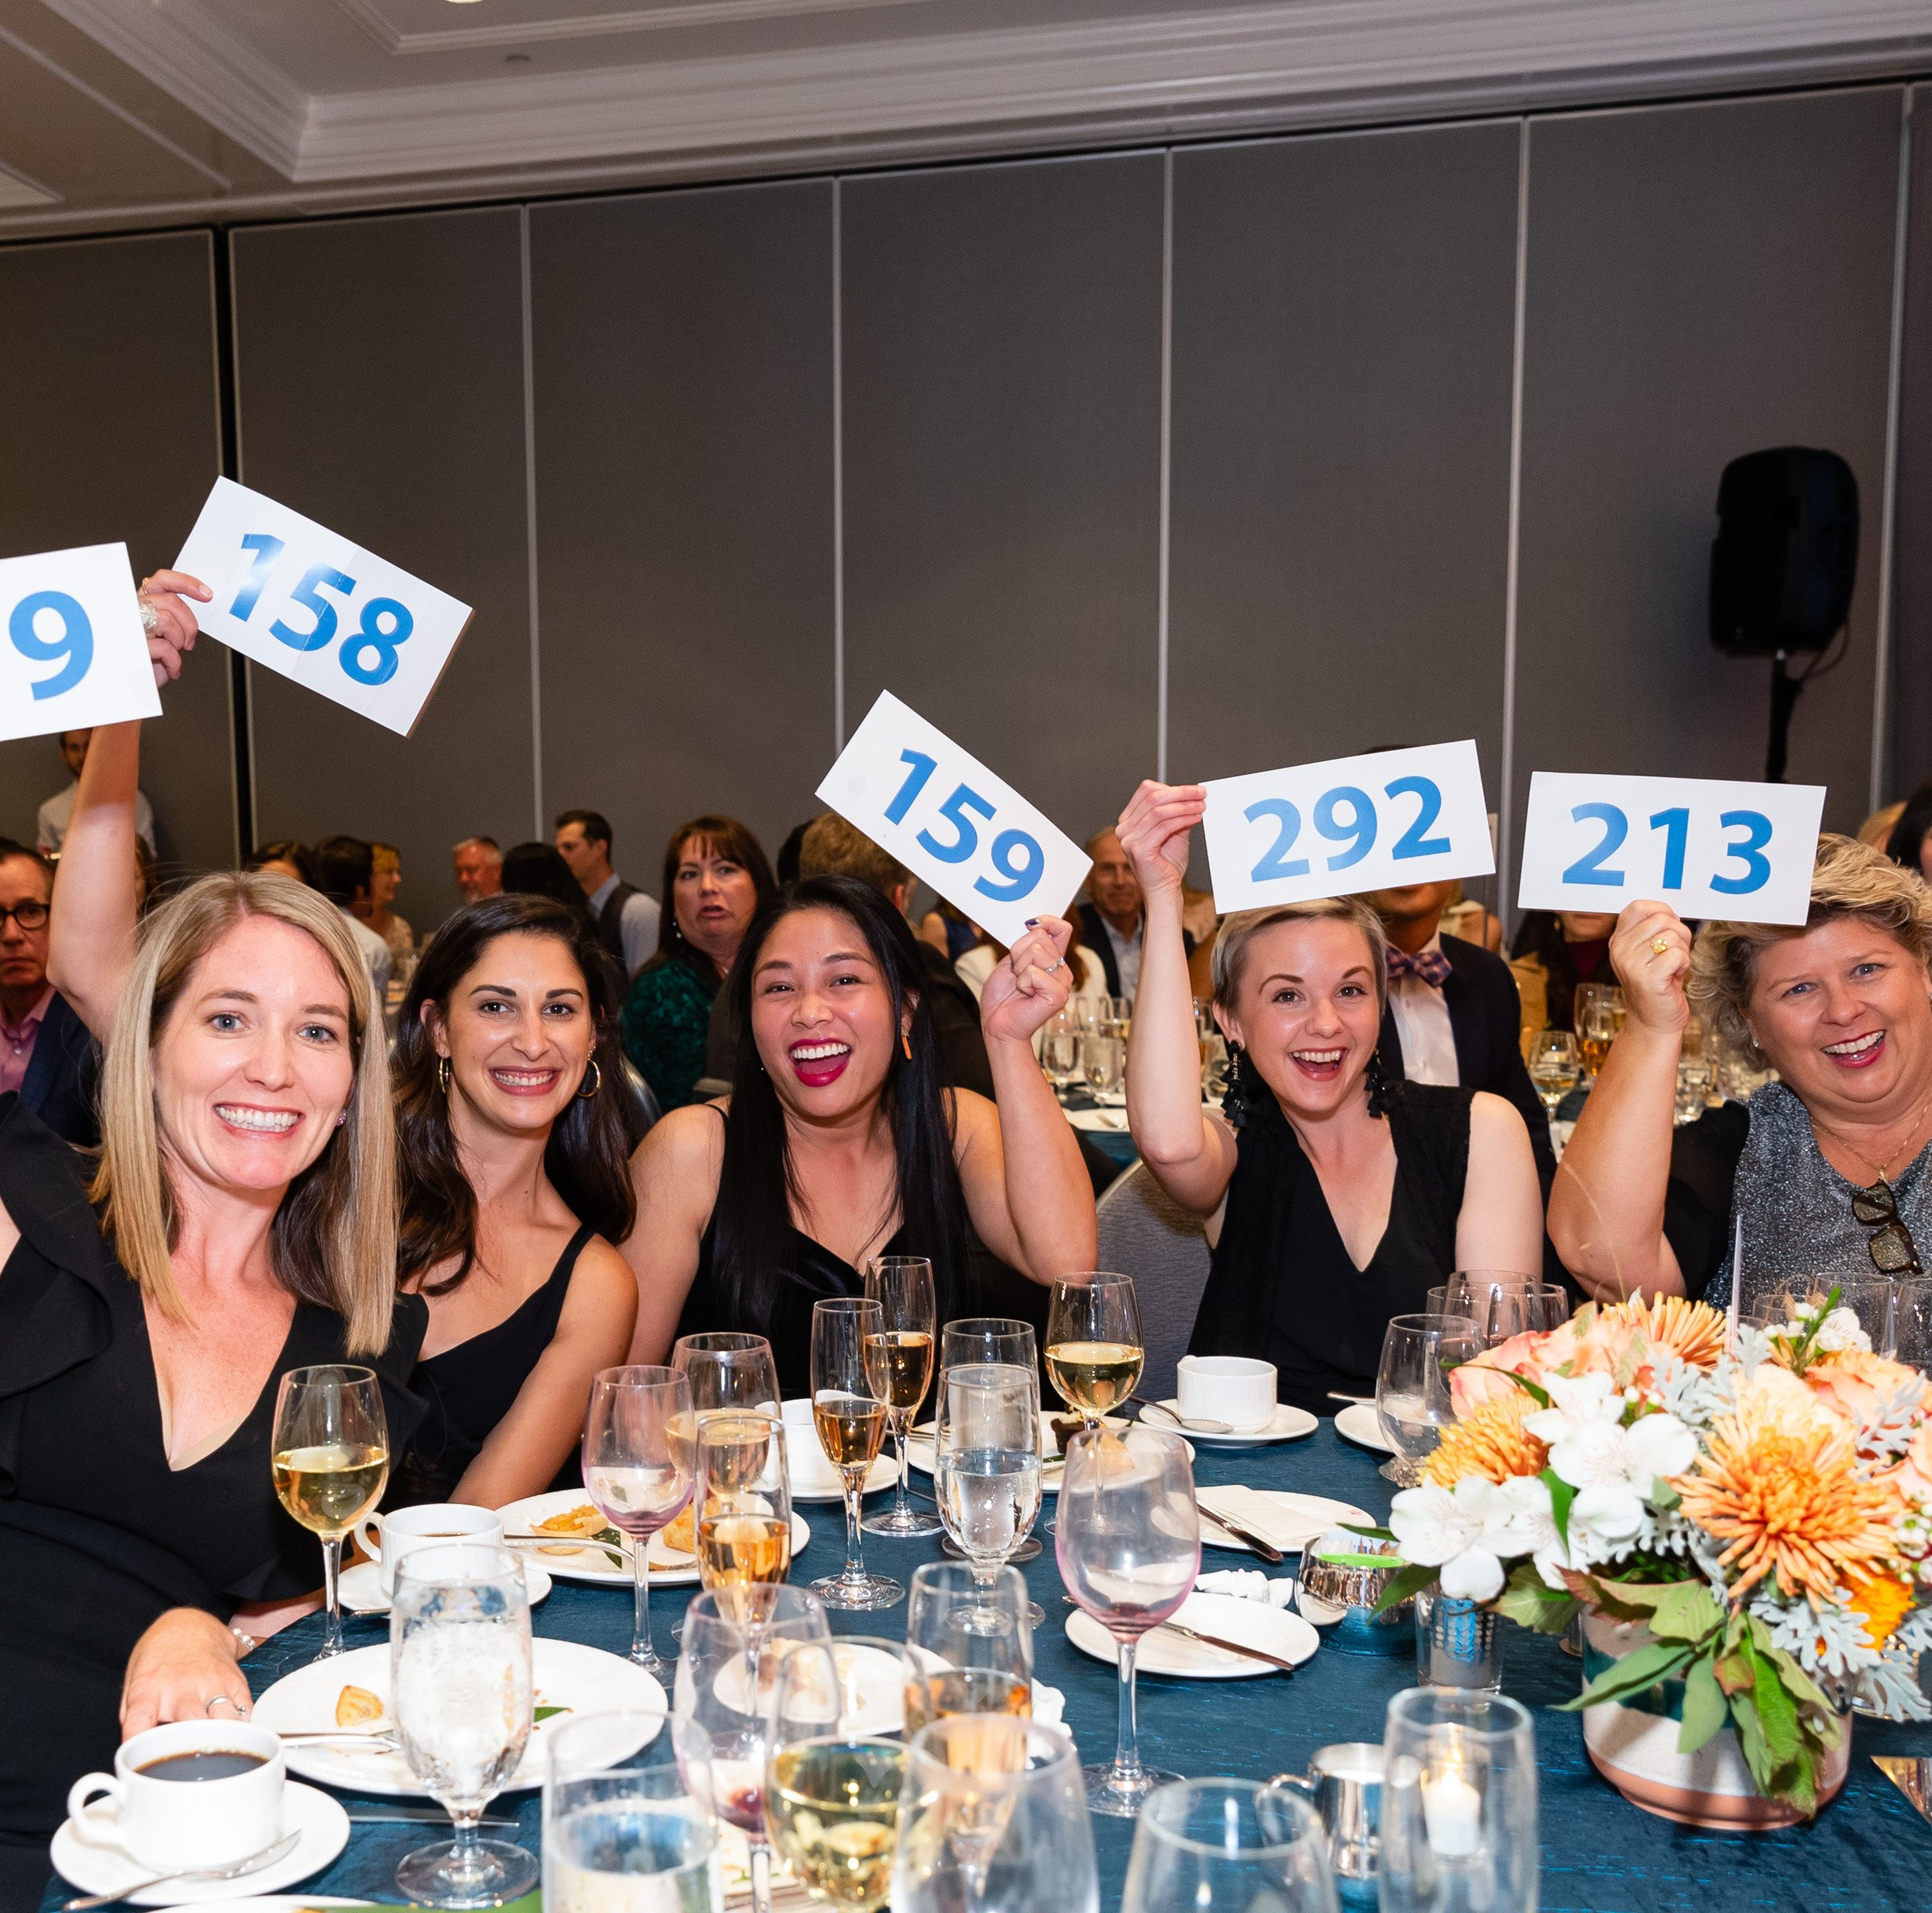 Table of women with bid paddles in the air